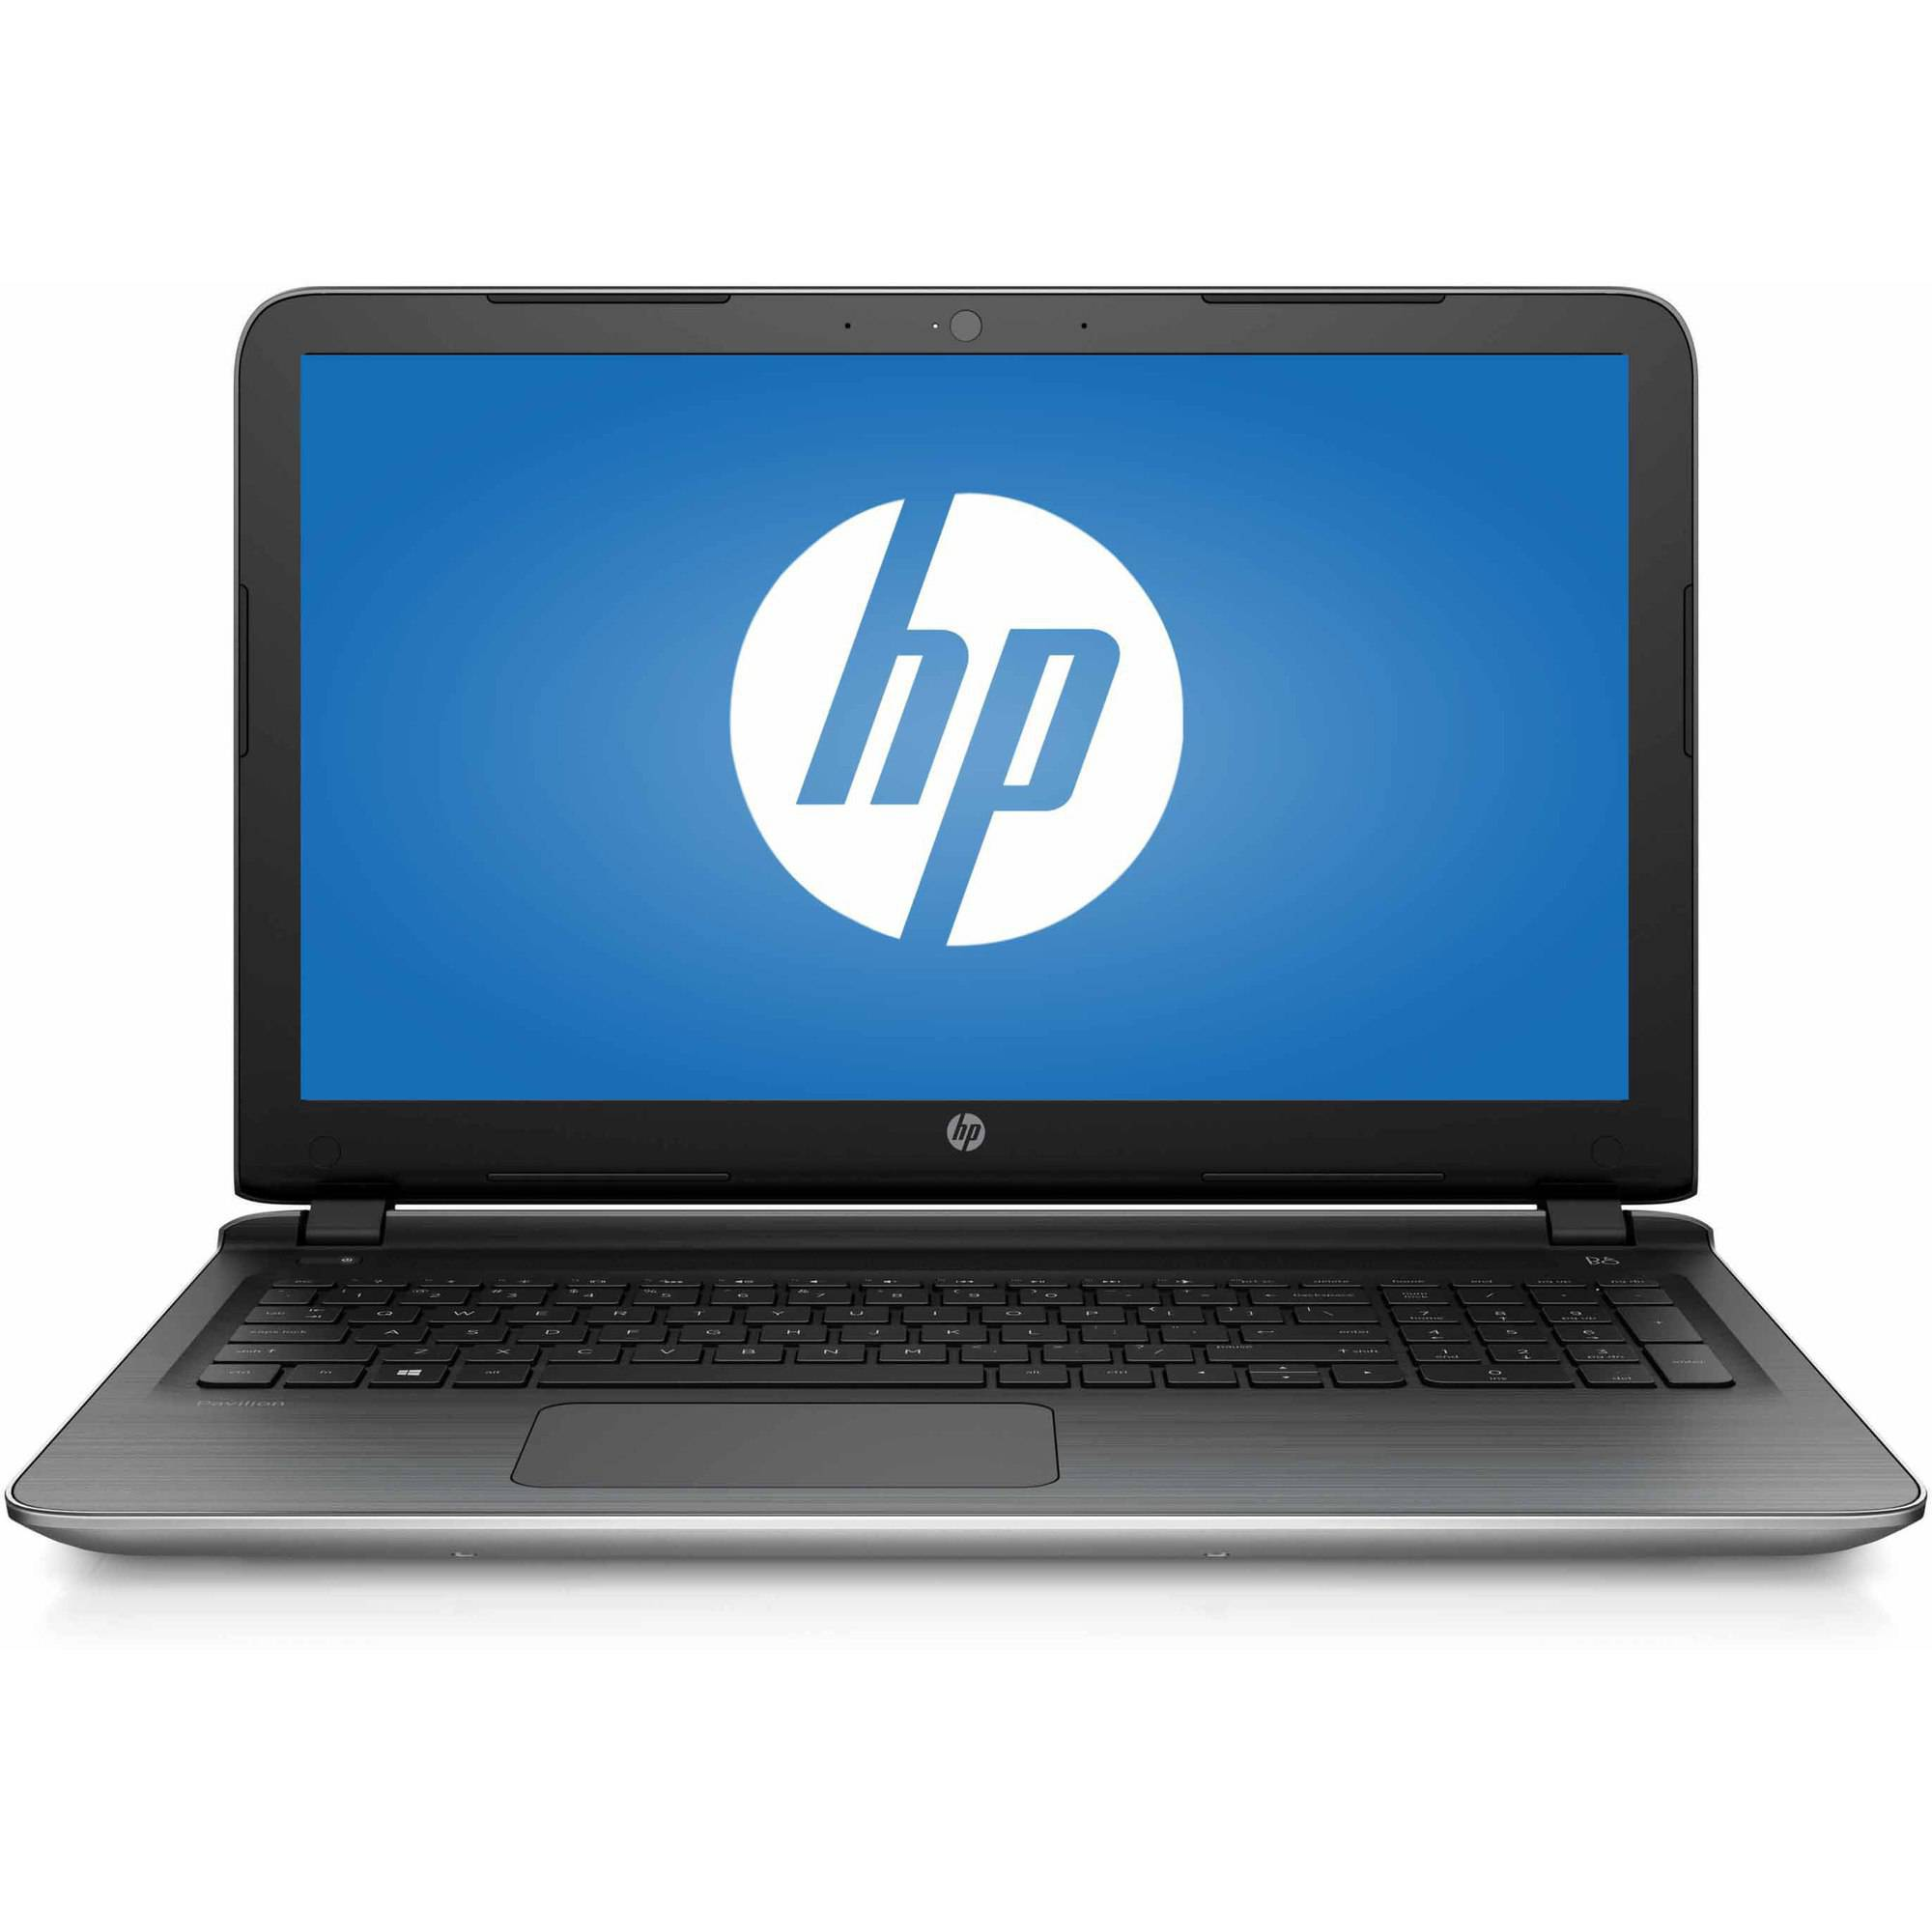 """Refurbished HP Silver 17.3"""" Pavilion 17-g121wm Laptop PC with AMD A10-8700P Processor, 8GB Memory, 1TB Hard Drive and Windows 10 Home"""